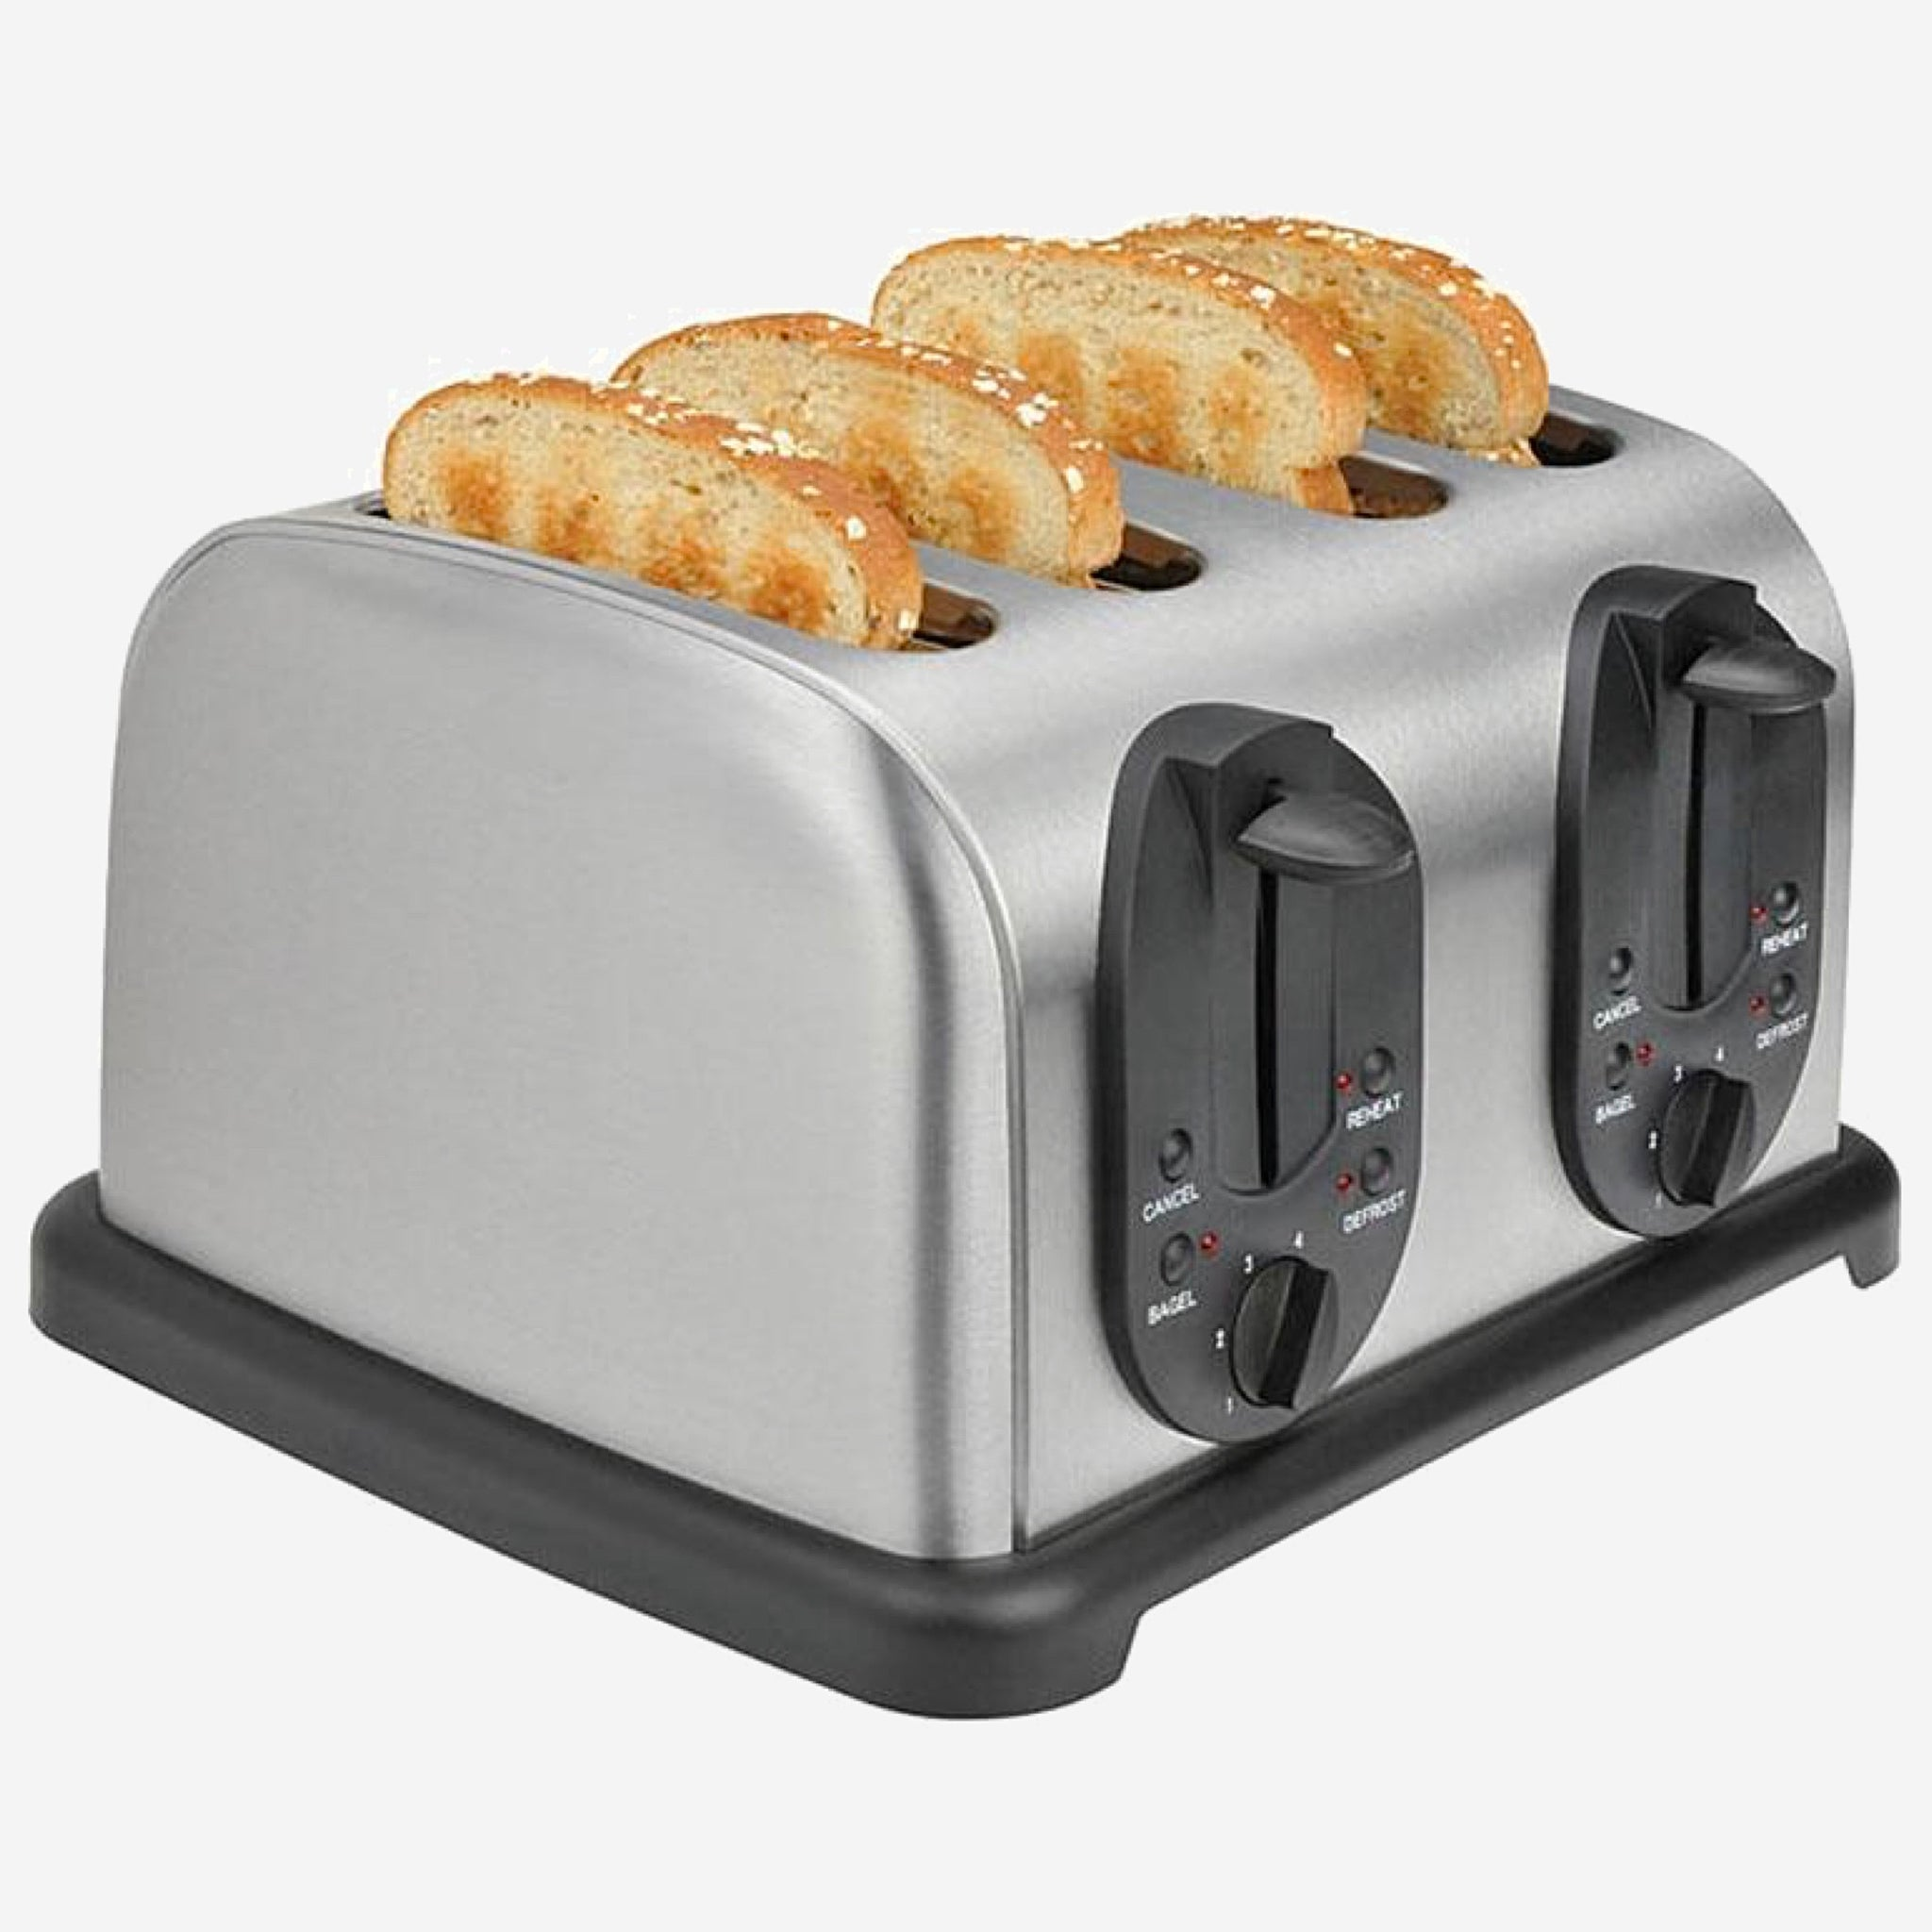 Stainless Steel 4-Slice Toaster    Household bread baking machine kitchen appliance bread toaster oven for breakfast Trend